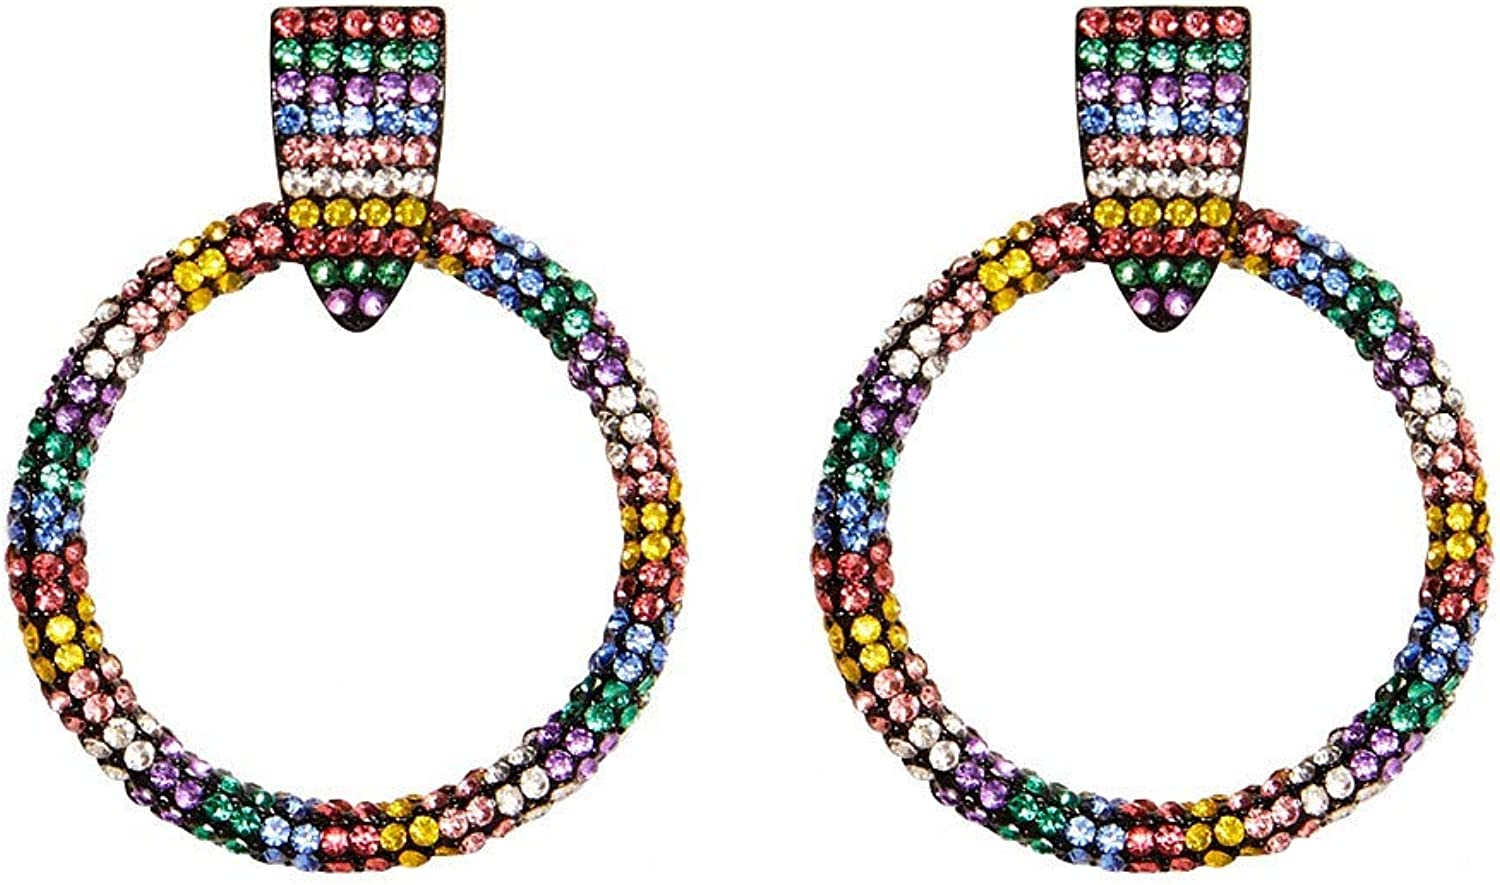 Women's Earrings Fashion Wild Dress with Diamond Stud Earrings Europe and The New Personality colorful Rhinestone Earrings colorful, Ladies Birthday Gift